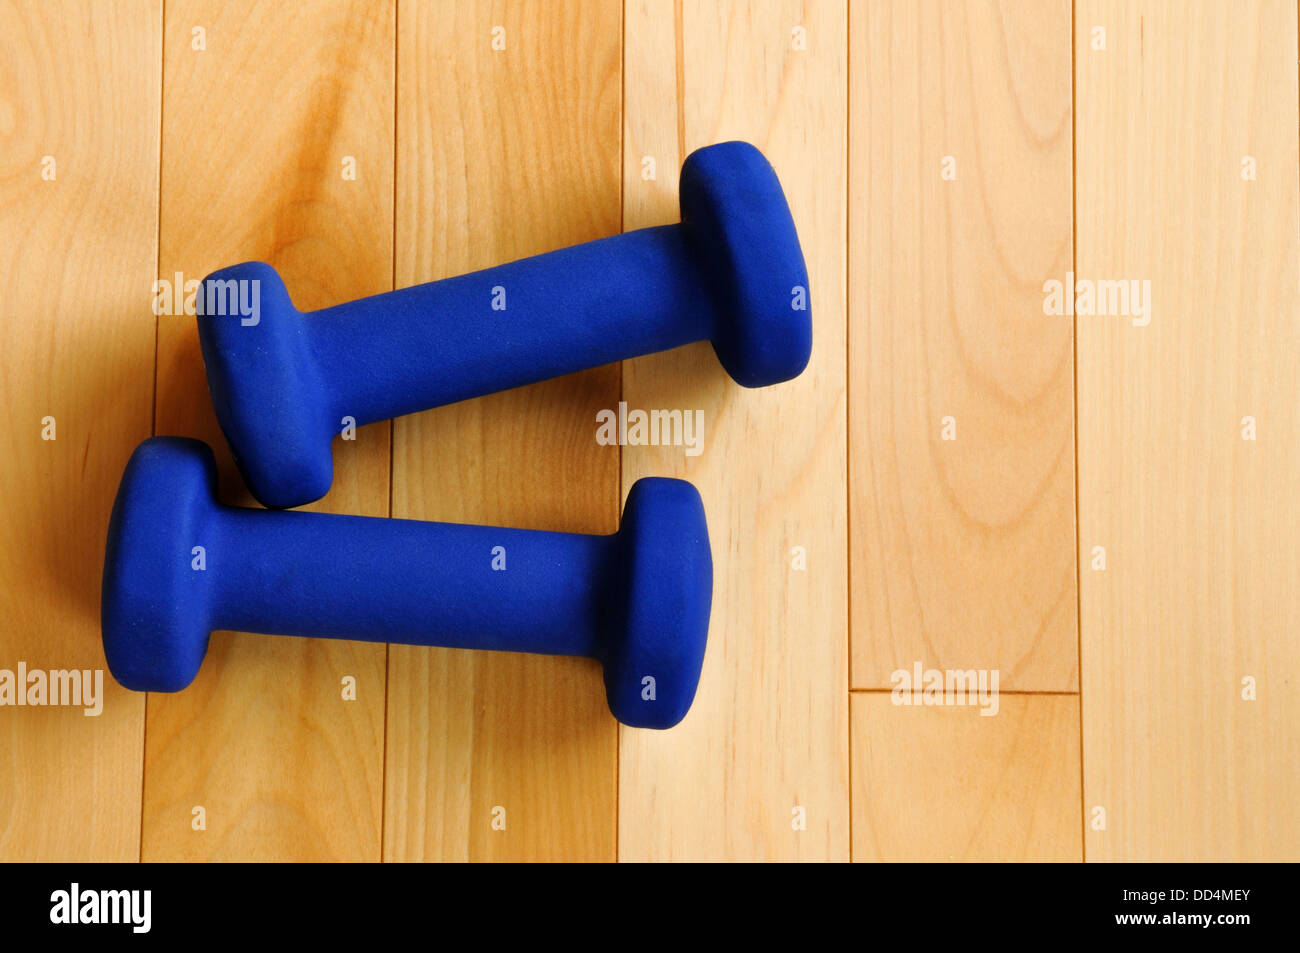 Blue Weights on Hardwood Floor of Fitness Center, view from above, copy space - Stock Image